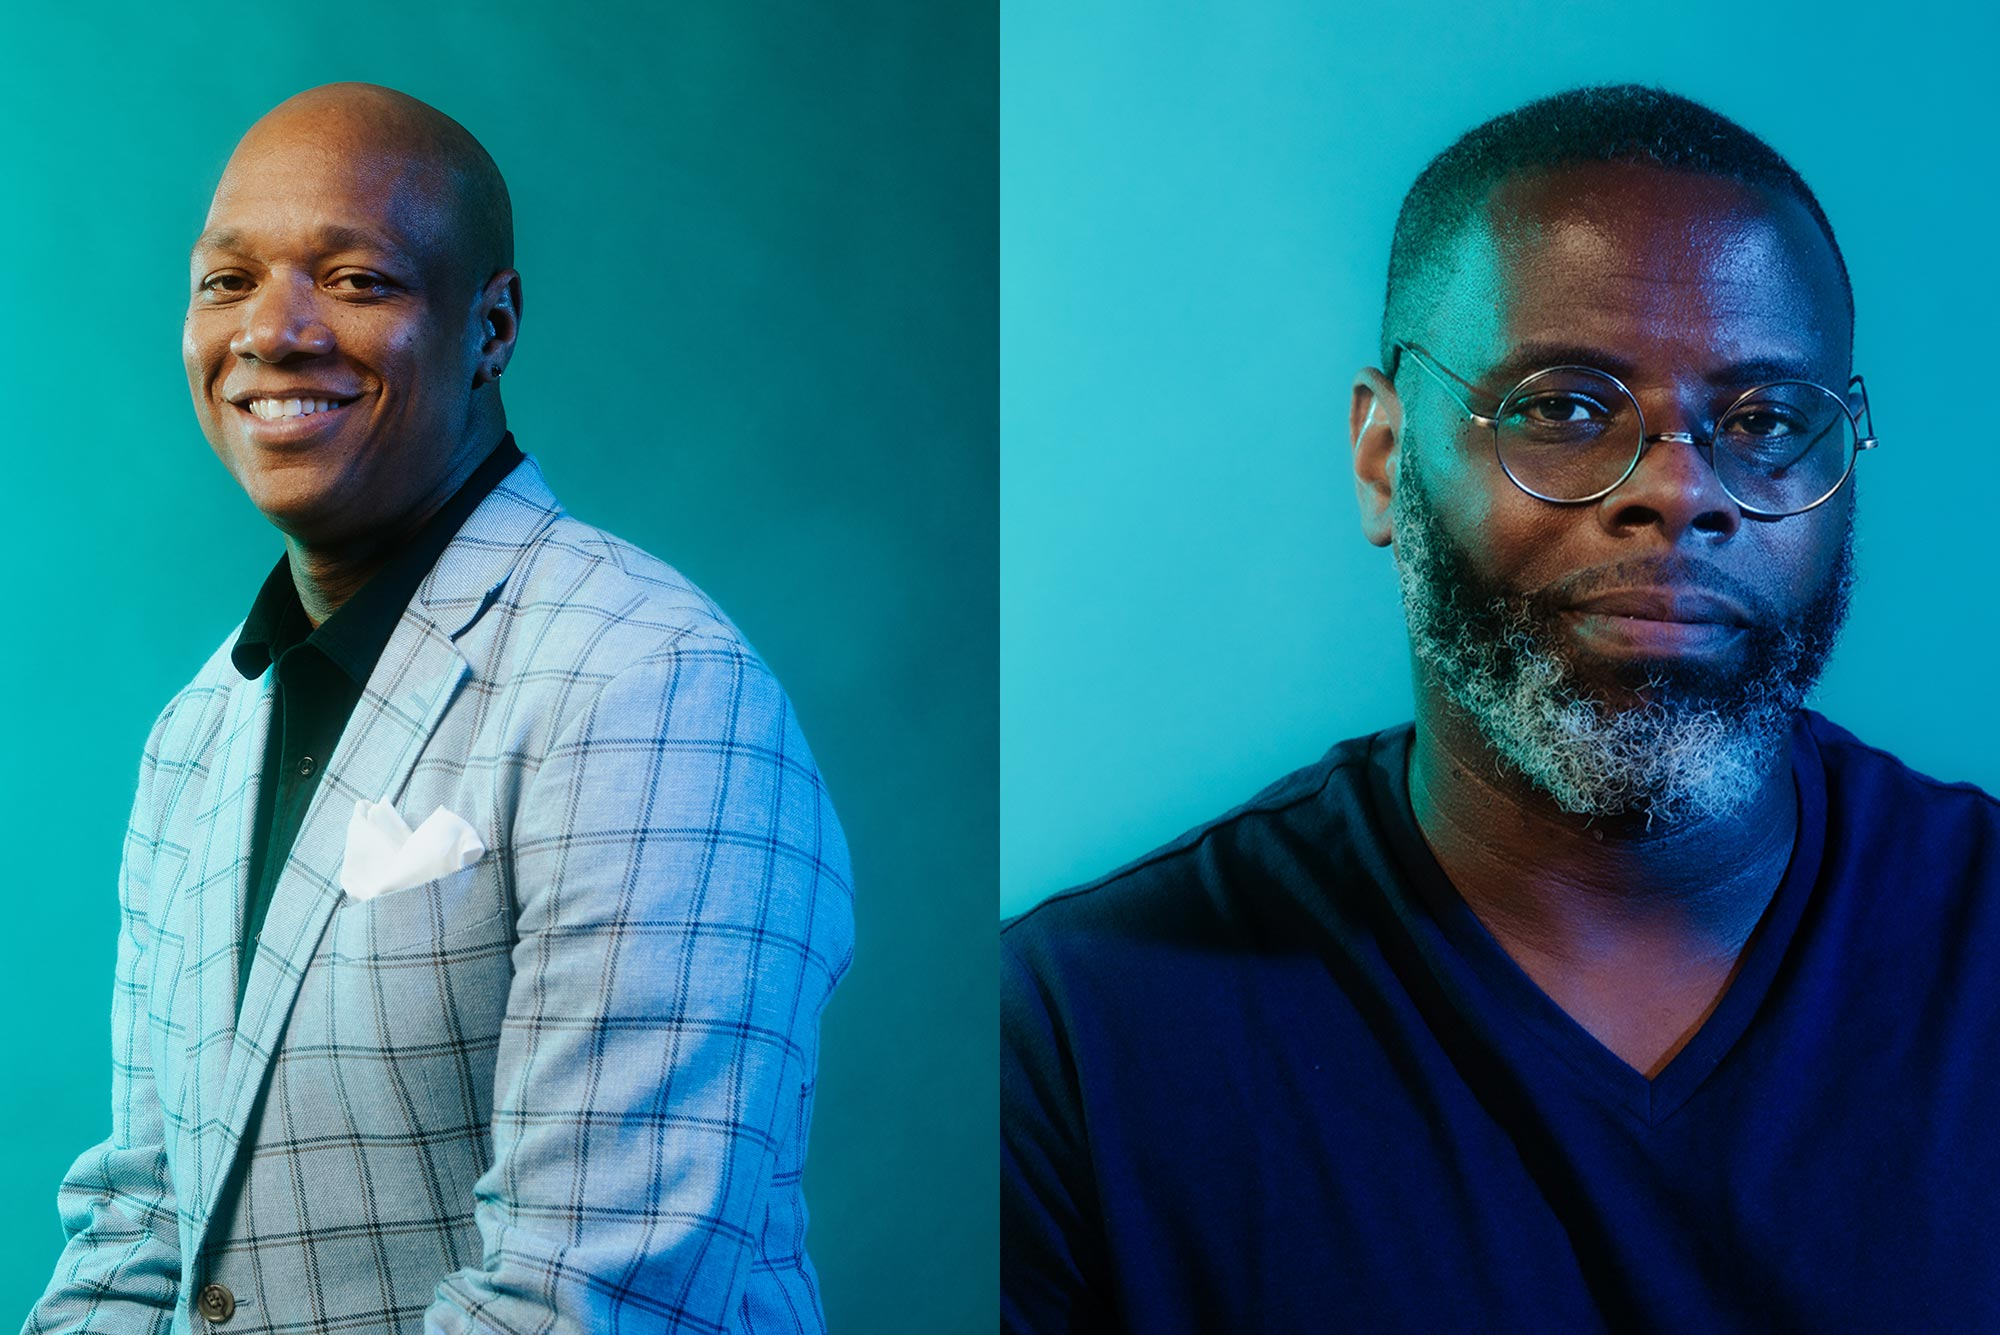 Composite image of two portraits of artists and researchers Joel Christian Gill ('04) (left) and Charles Suggs ('20). Gill wears a light striped suit jacket and smiles in front of a bright blue background. Suggs wears a black V-neck shirt and glasses and smiles slightly on a light blue background.